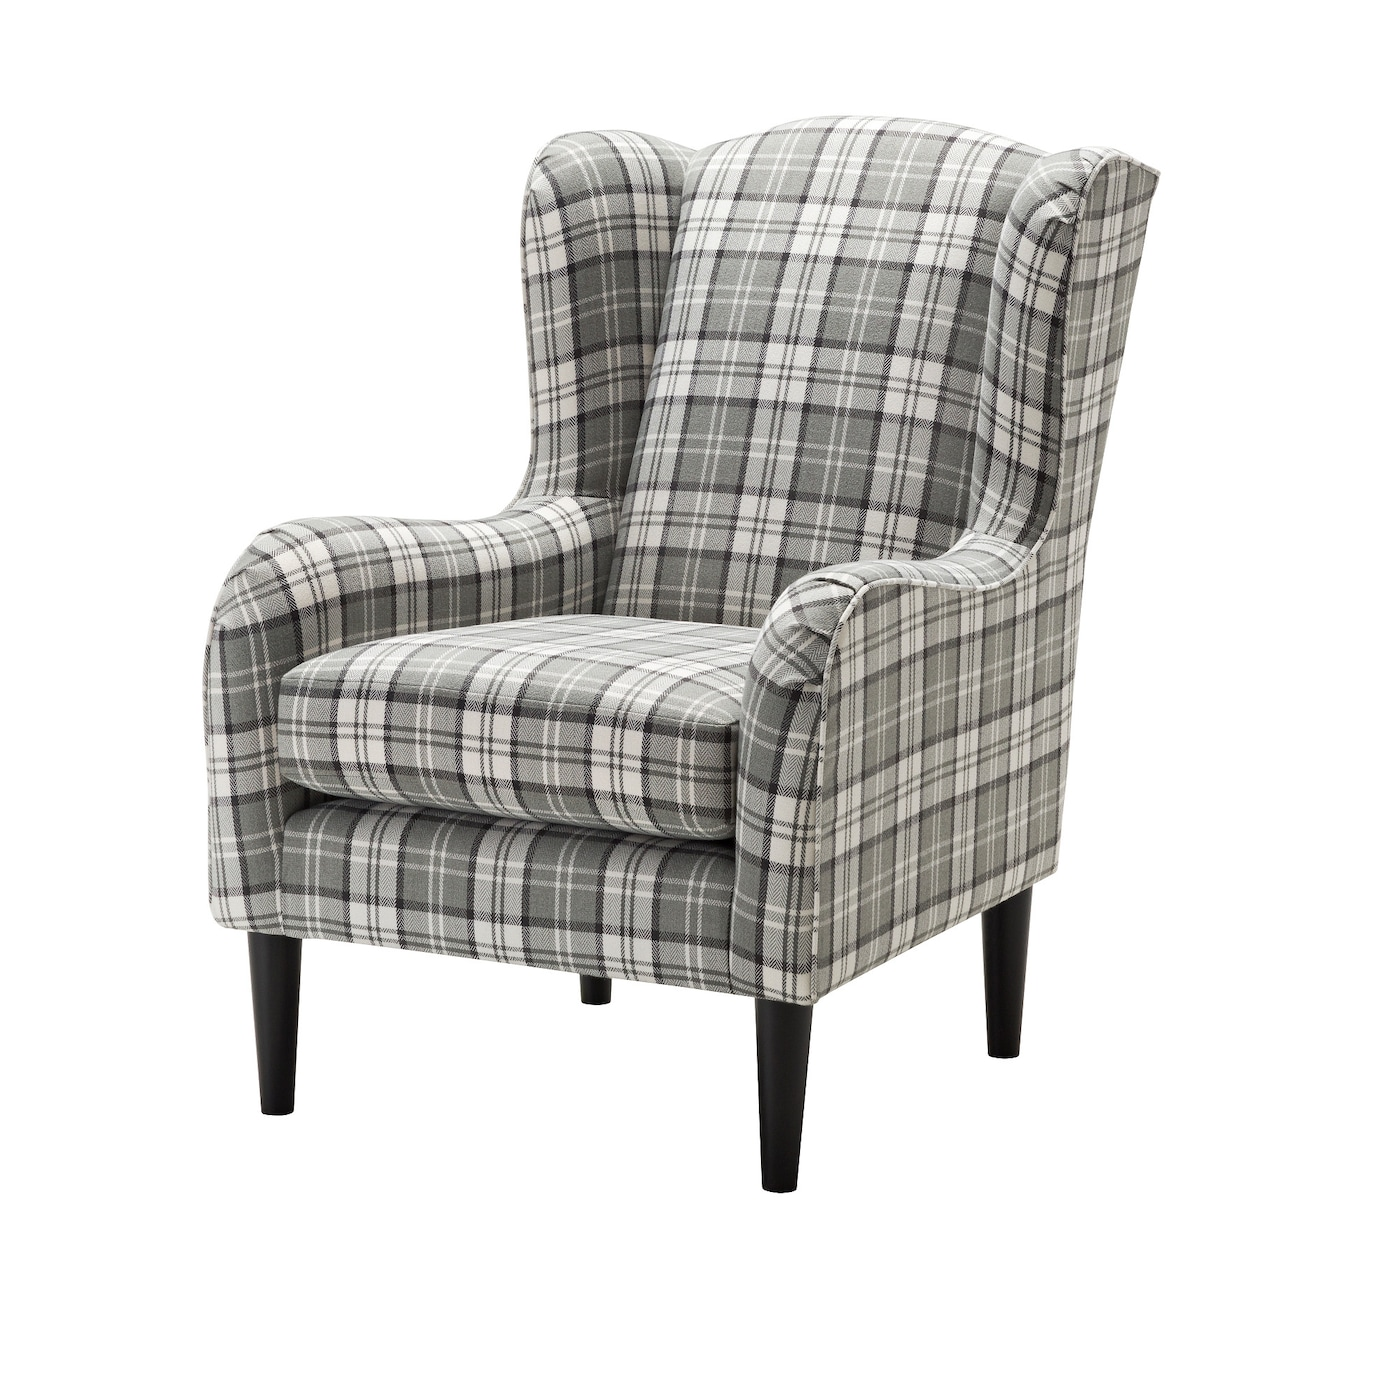 cream wingback armchair ramsebo wing chair ikea 13632 | ramsebo wing chair 0486509 pe622078 s5